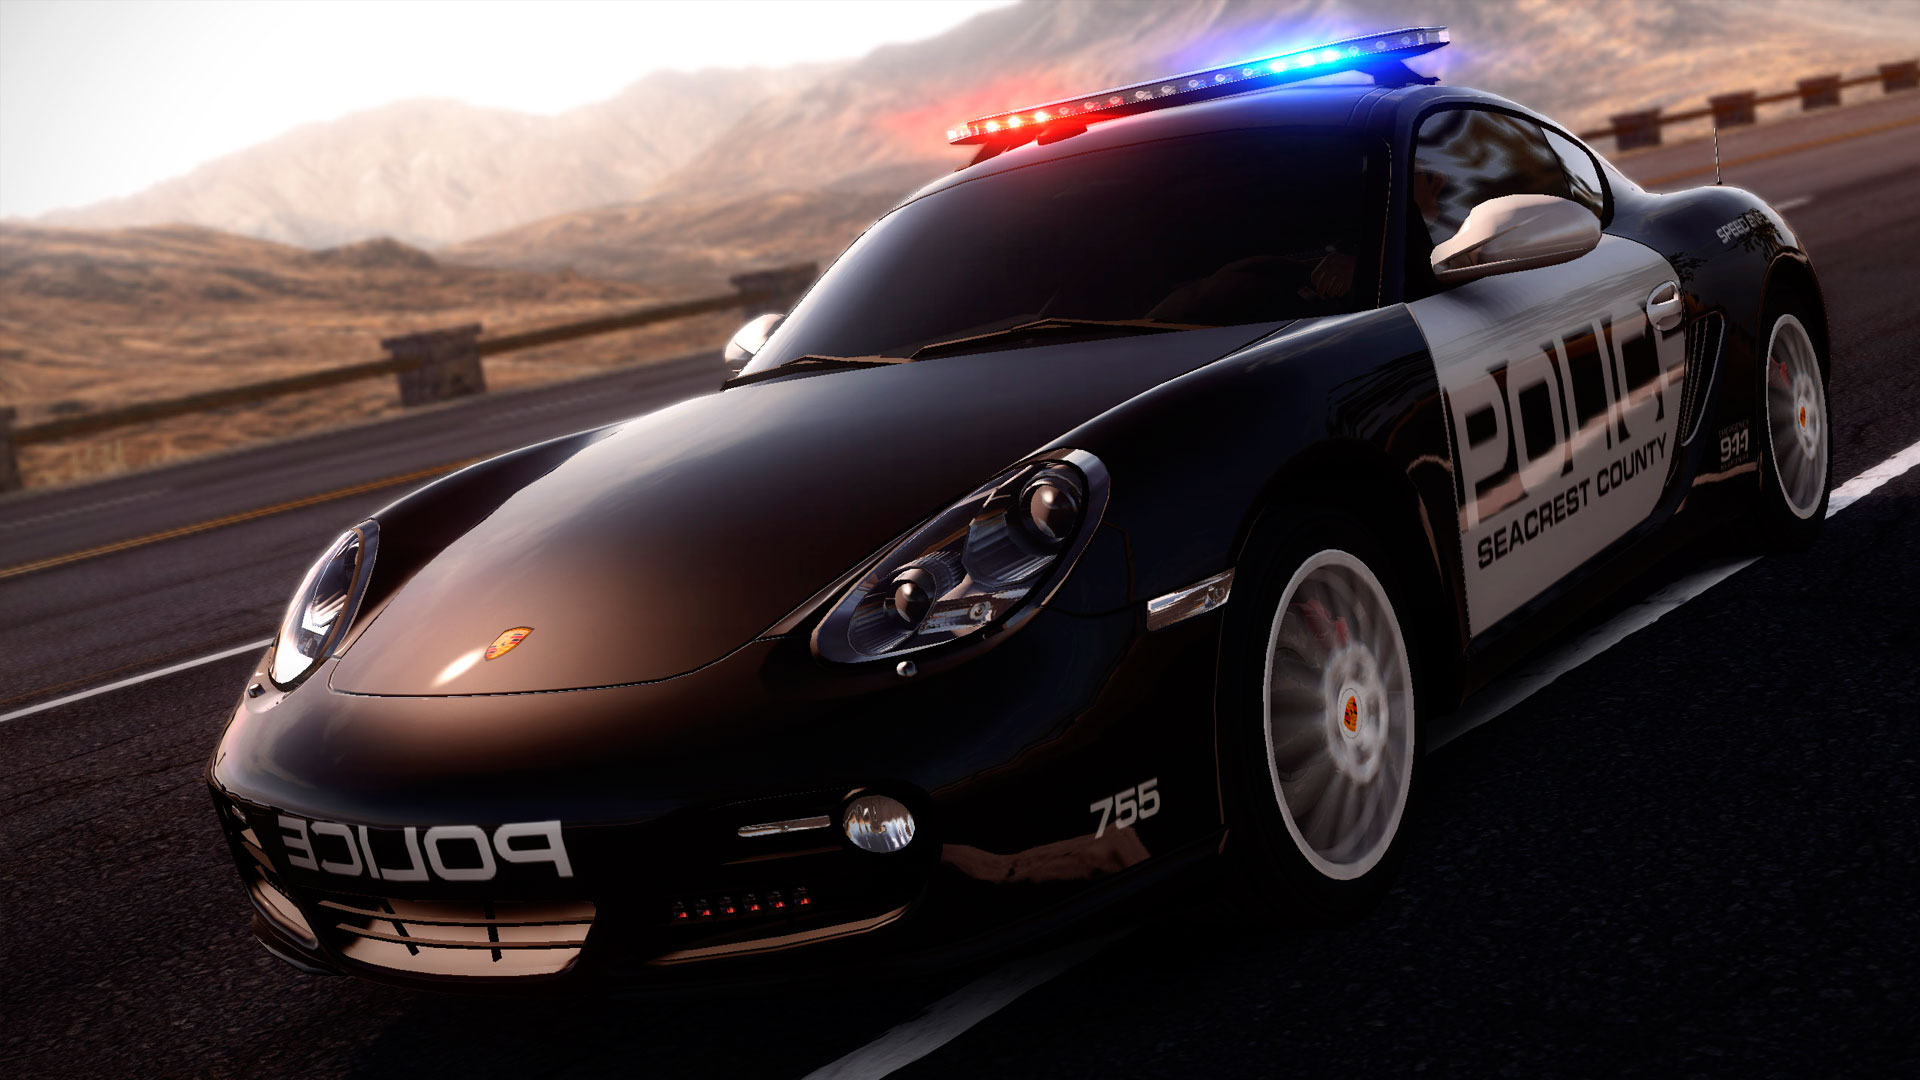 Police Car Hd Cool Cars Backgrounds Pictures 1920x1080